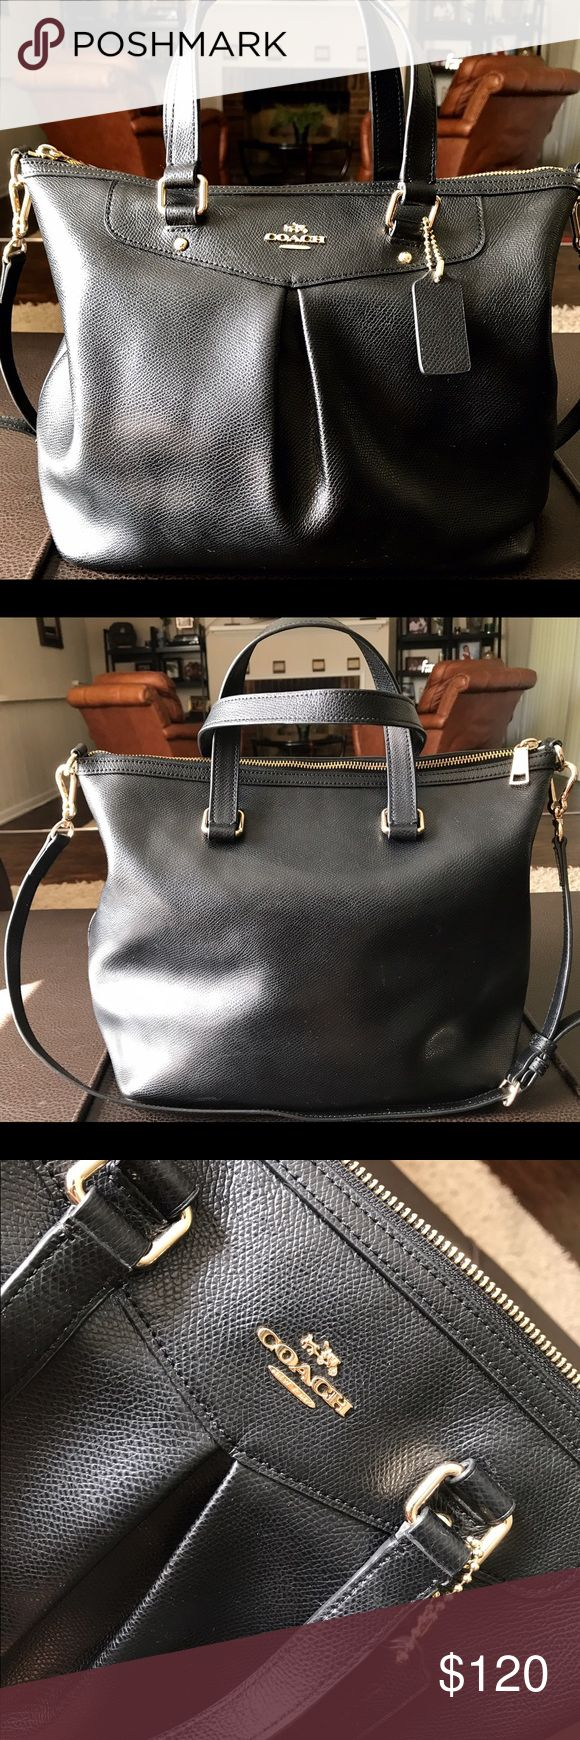 Authentic COACH Tote Bag COACH Tote Bag with adjustable/removable strap. Coach Bags Totes